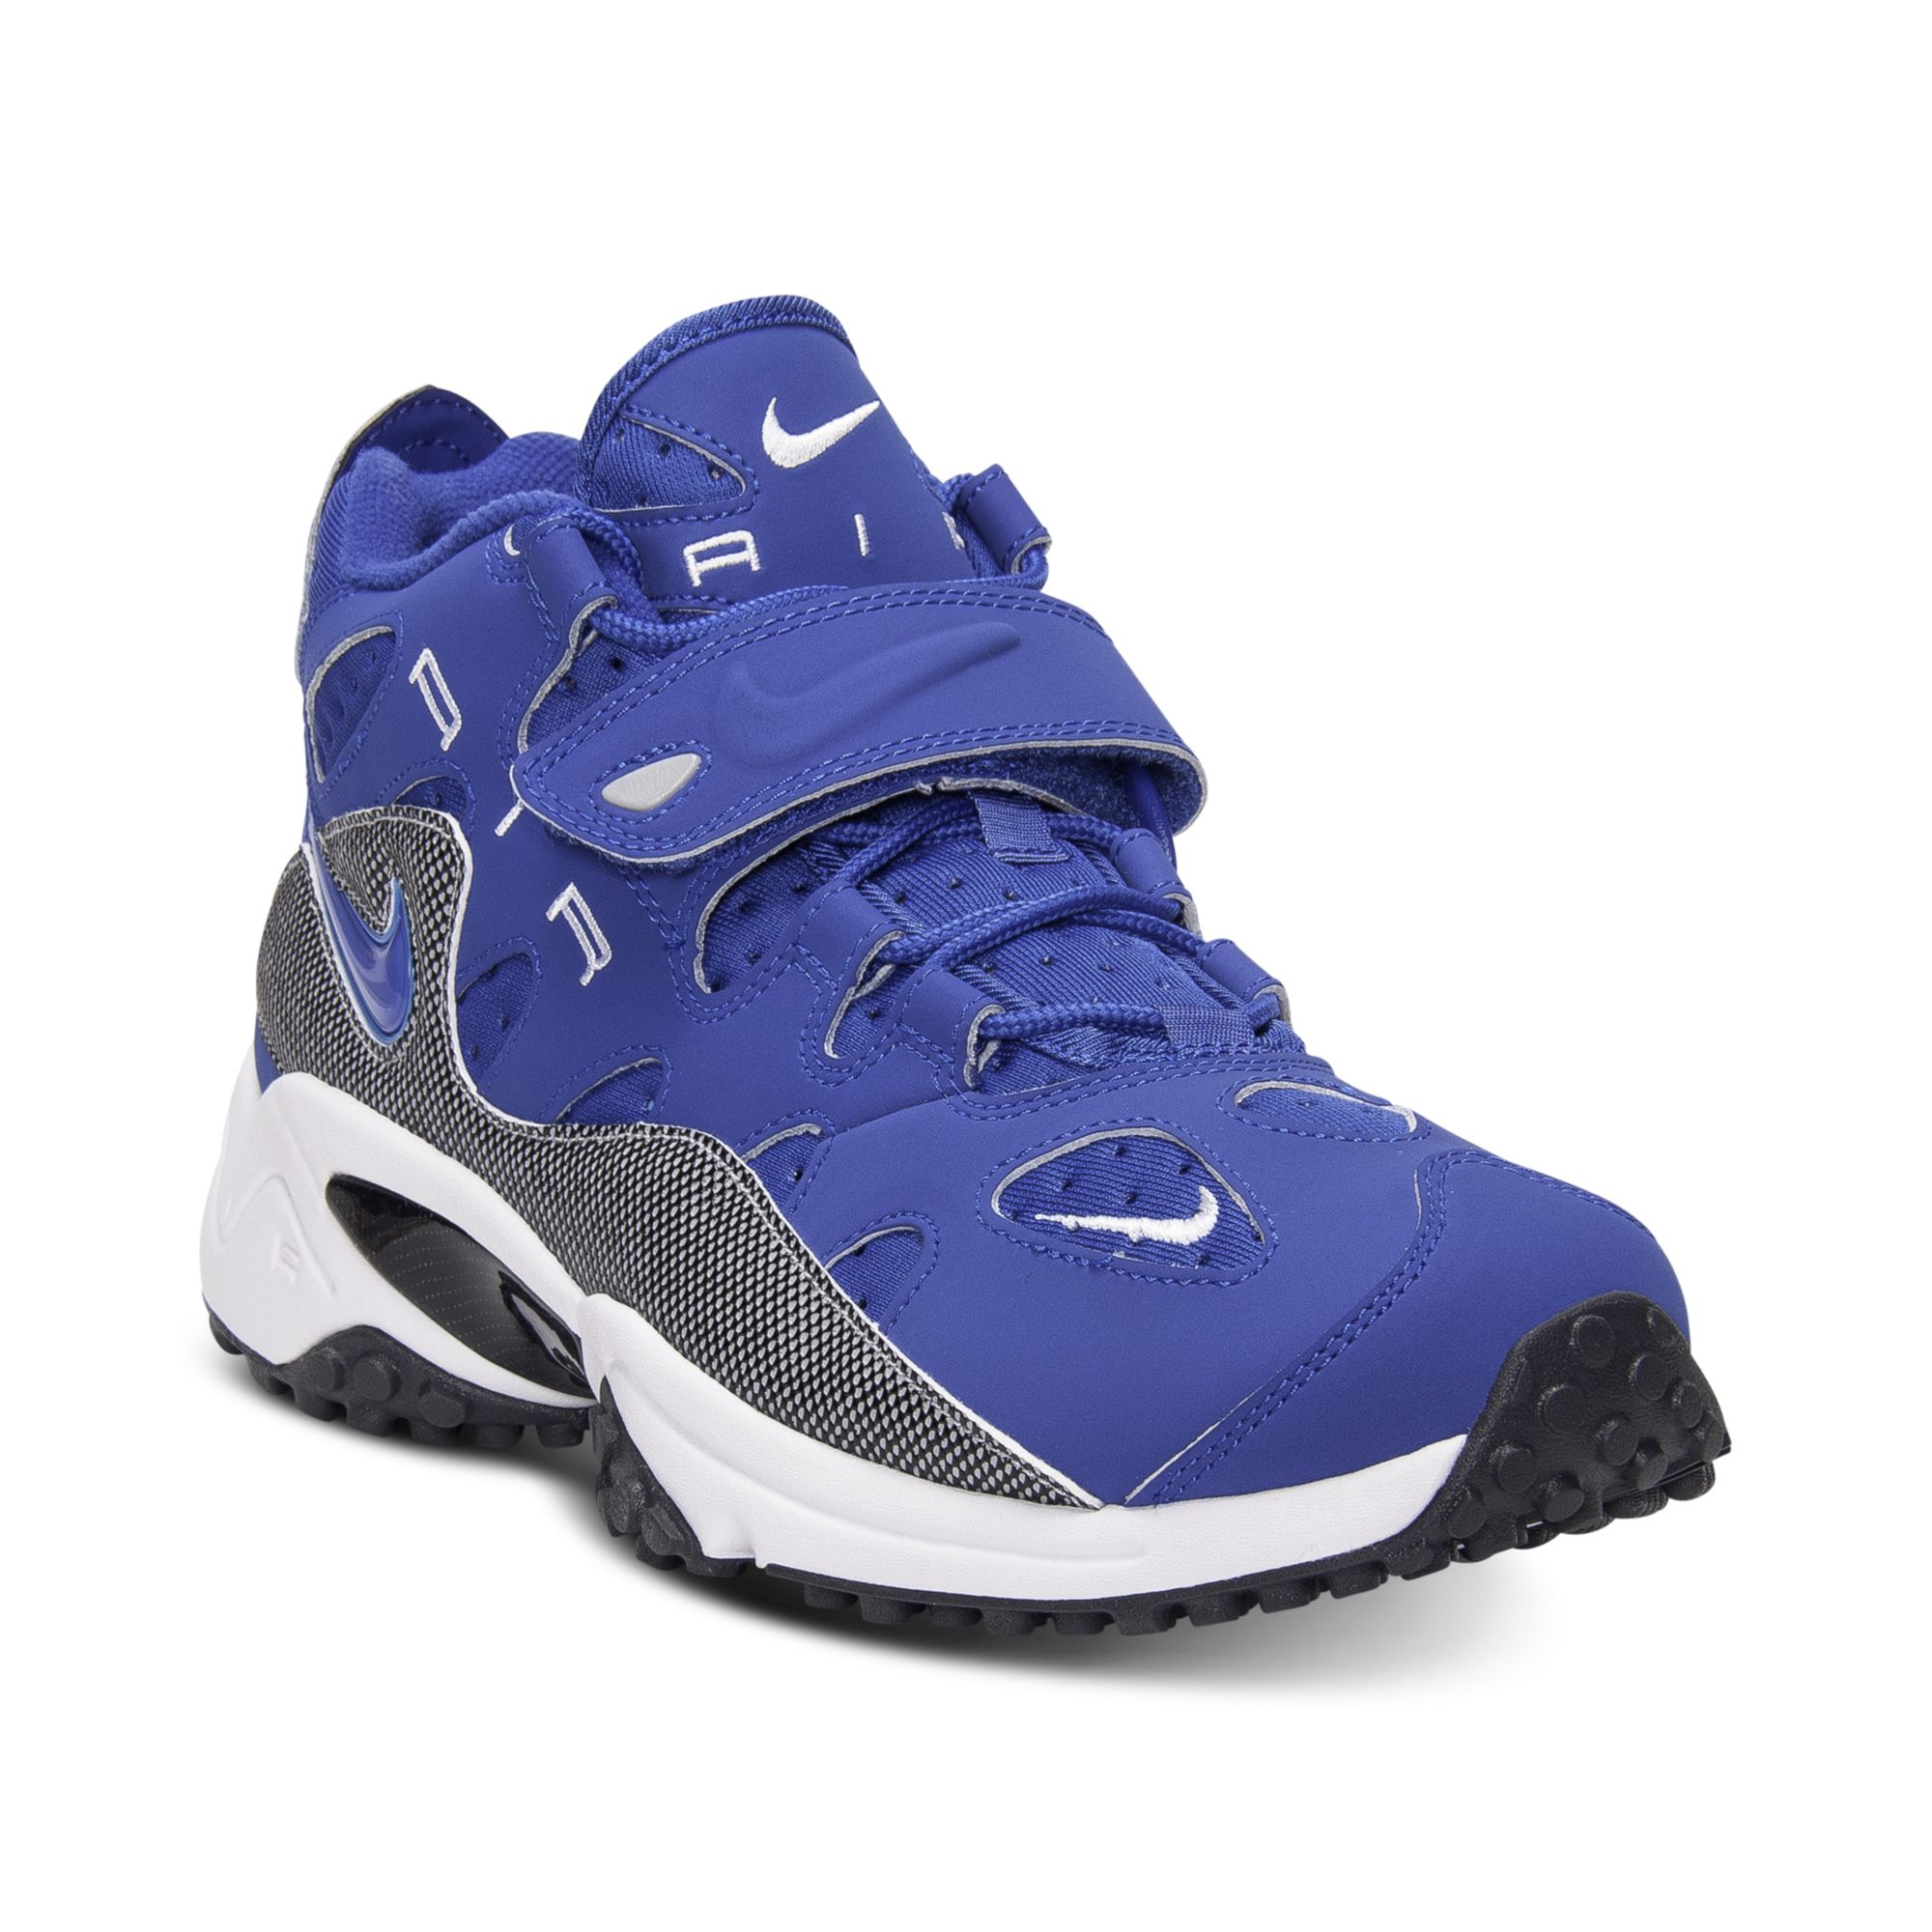 e964194f19 ... switzerland lyst nike air max speed turf raider training sneakers in  blue for men a3c62 80019